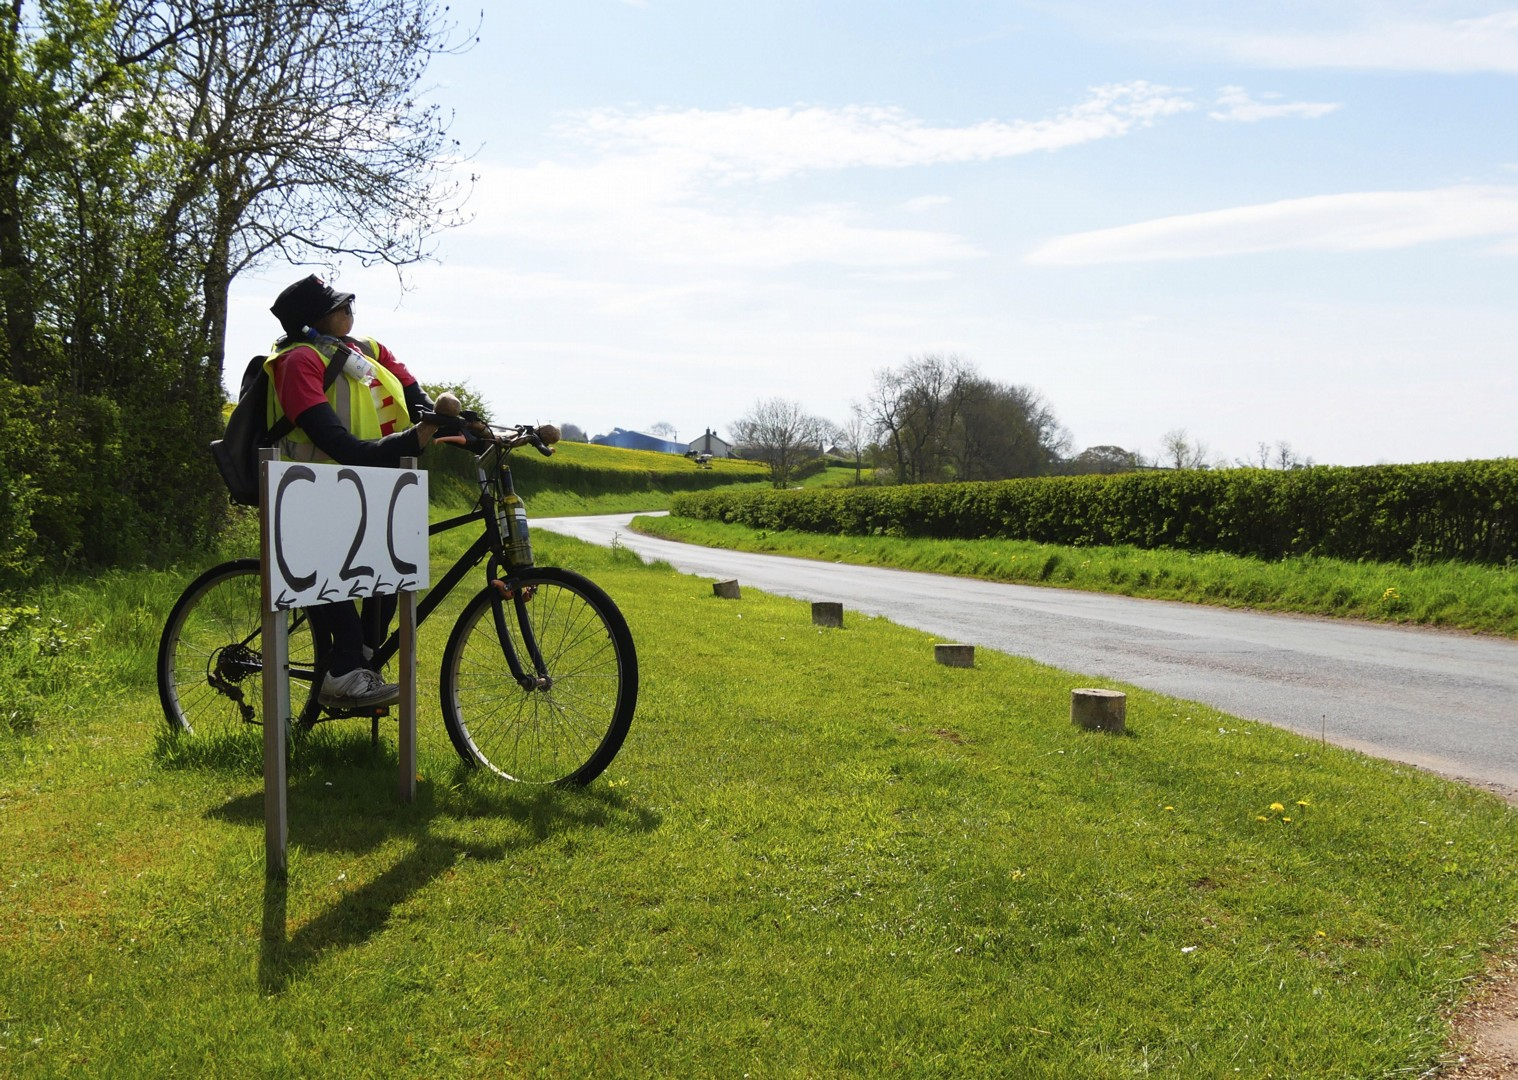 cyc-landmark-cumbria.jpg - UK - C2C - Coast to Coast - Supported Leisure Cycling Holiday - Leisure Cycling